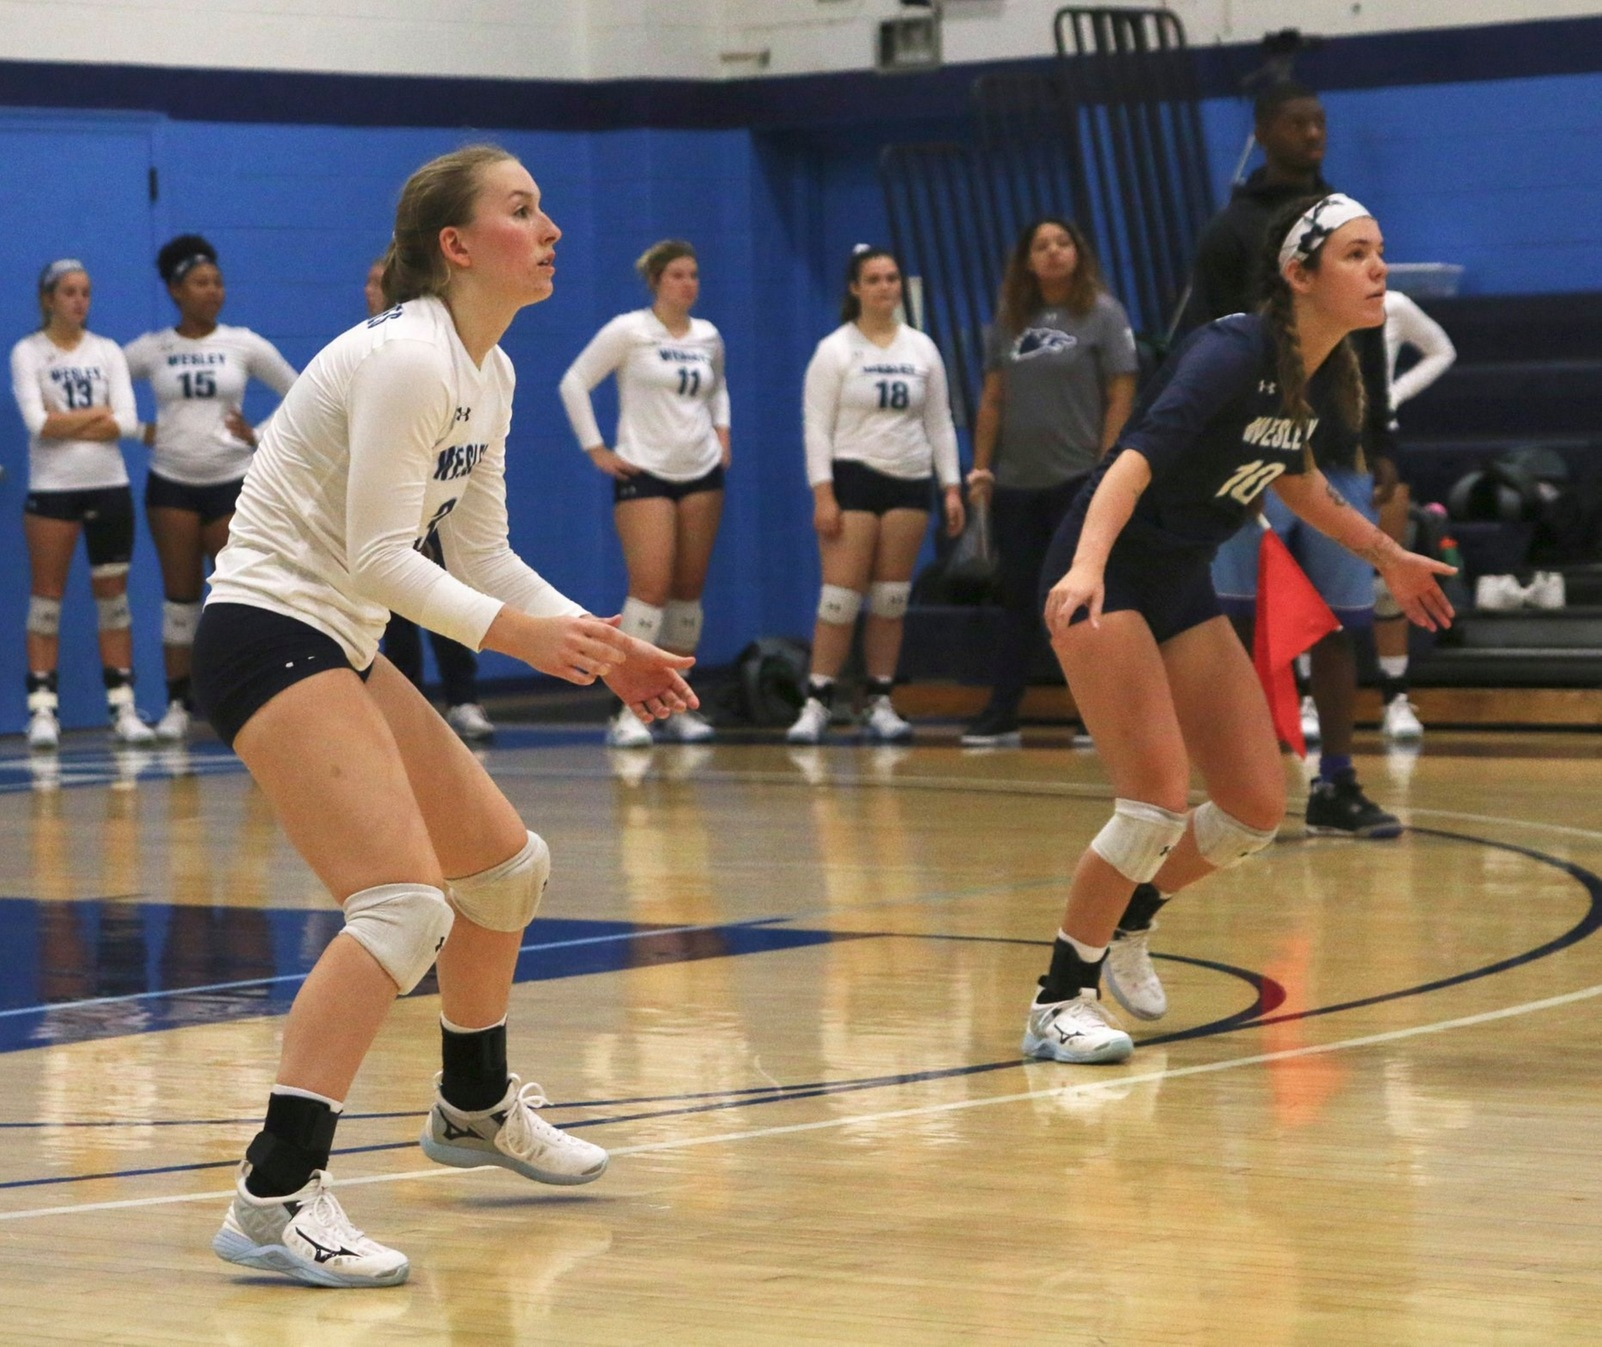 Volleyball Falls in Tri-Match at Washington College